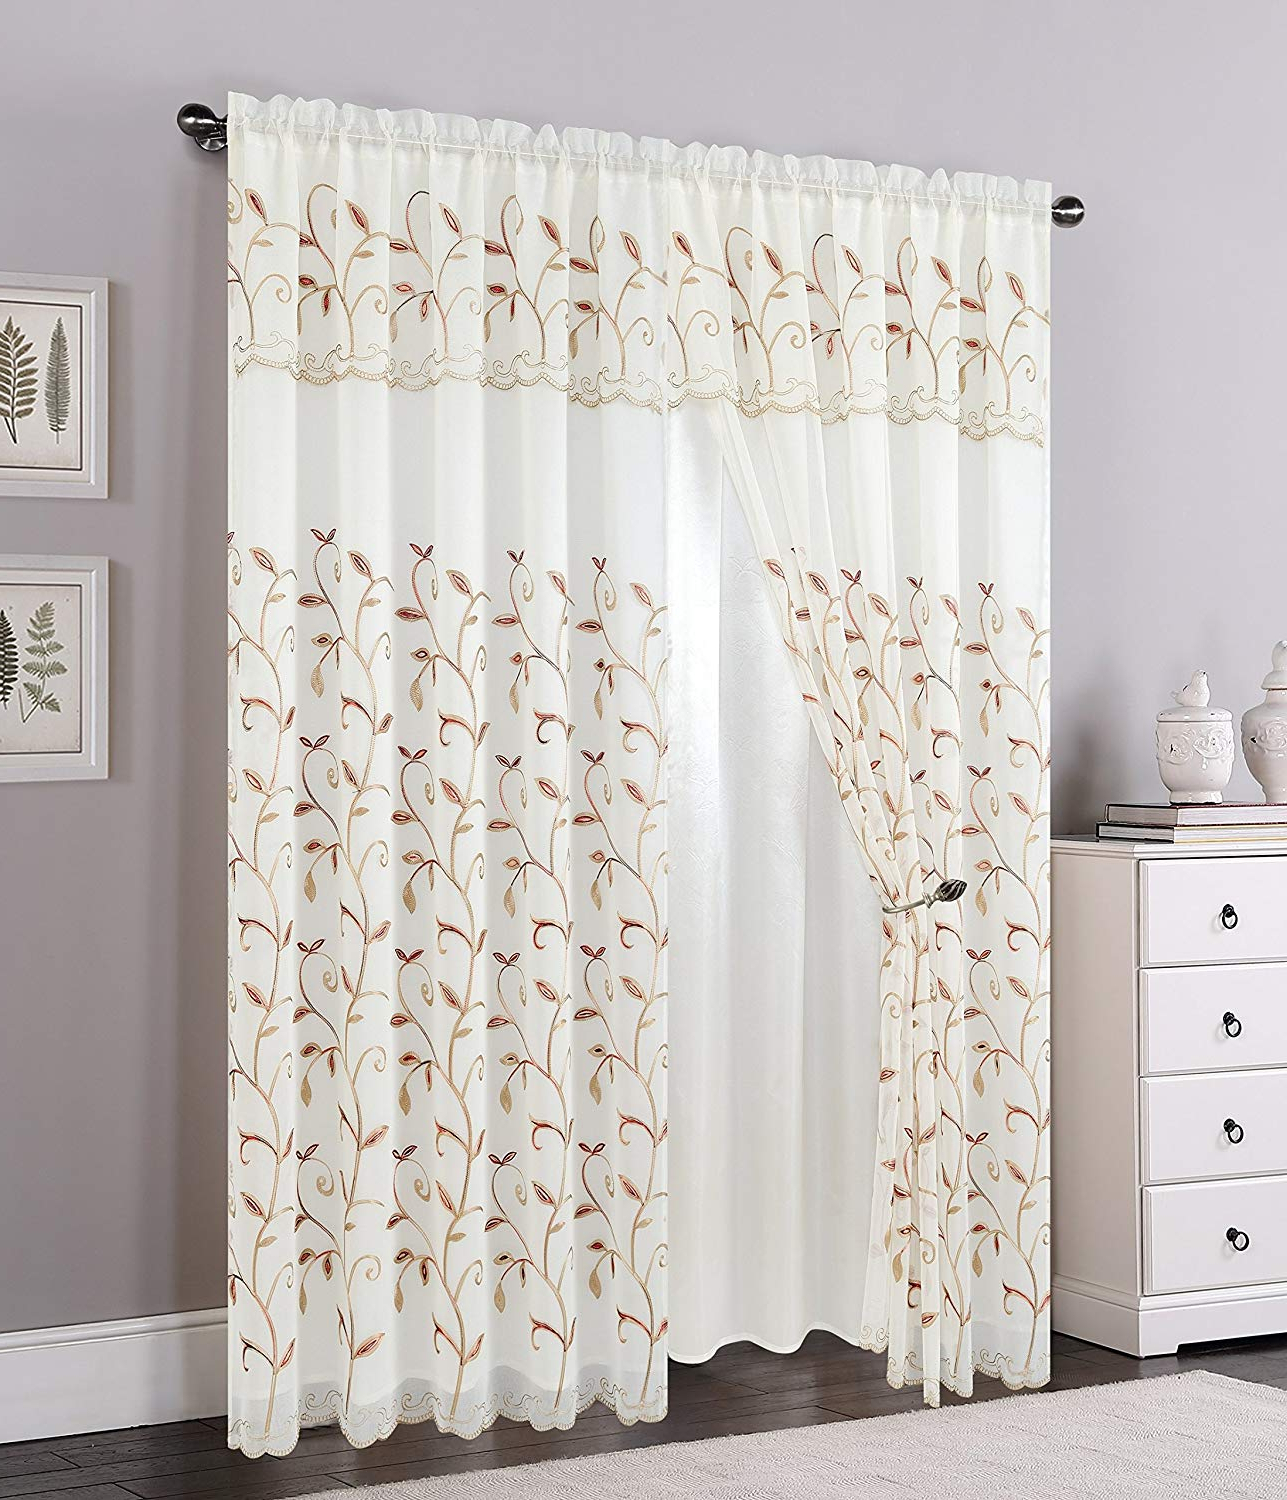 """Elegant Comfort Luxury Curtain/window Panel Set With Attached Valance And Backing 54"""" X 84 Inch (set Of 2), Beige Pertaining To Well Known Elegant Comfort Luxury Penelopie Jacquard Window Curtain Panel Pairs (View 6 of 20)"""